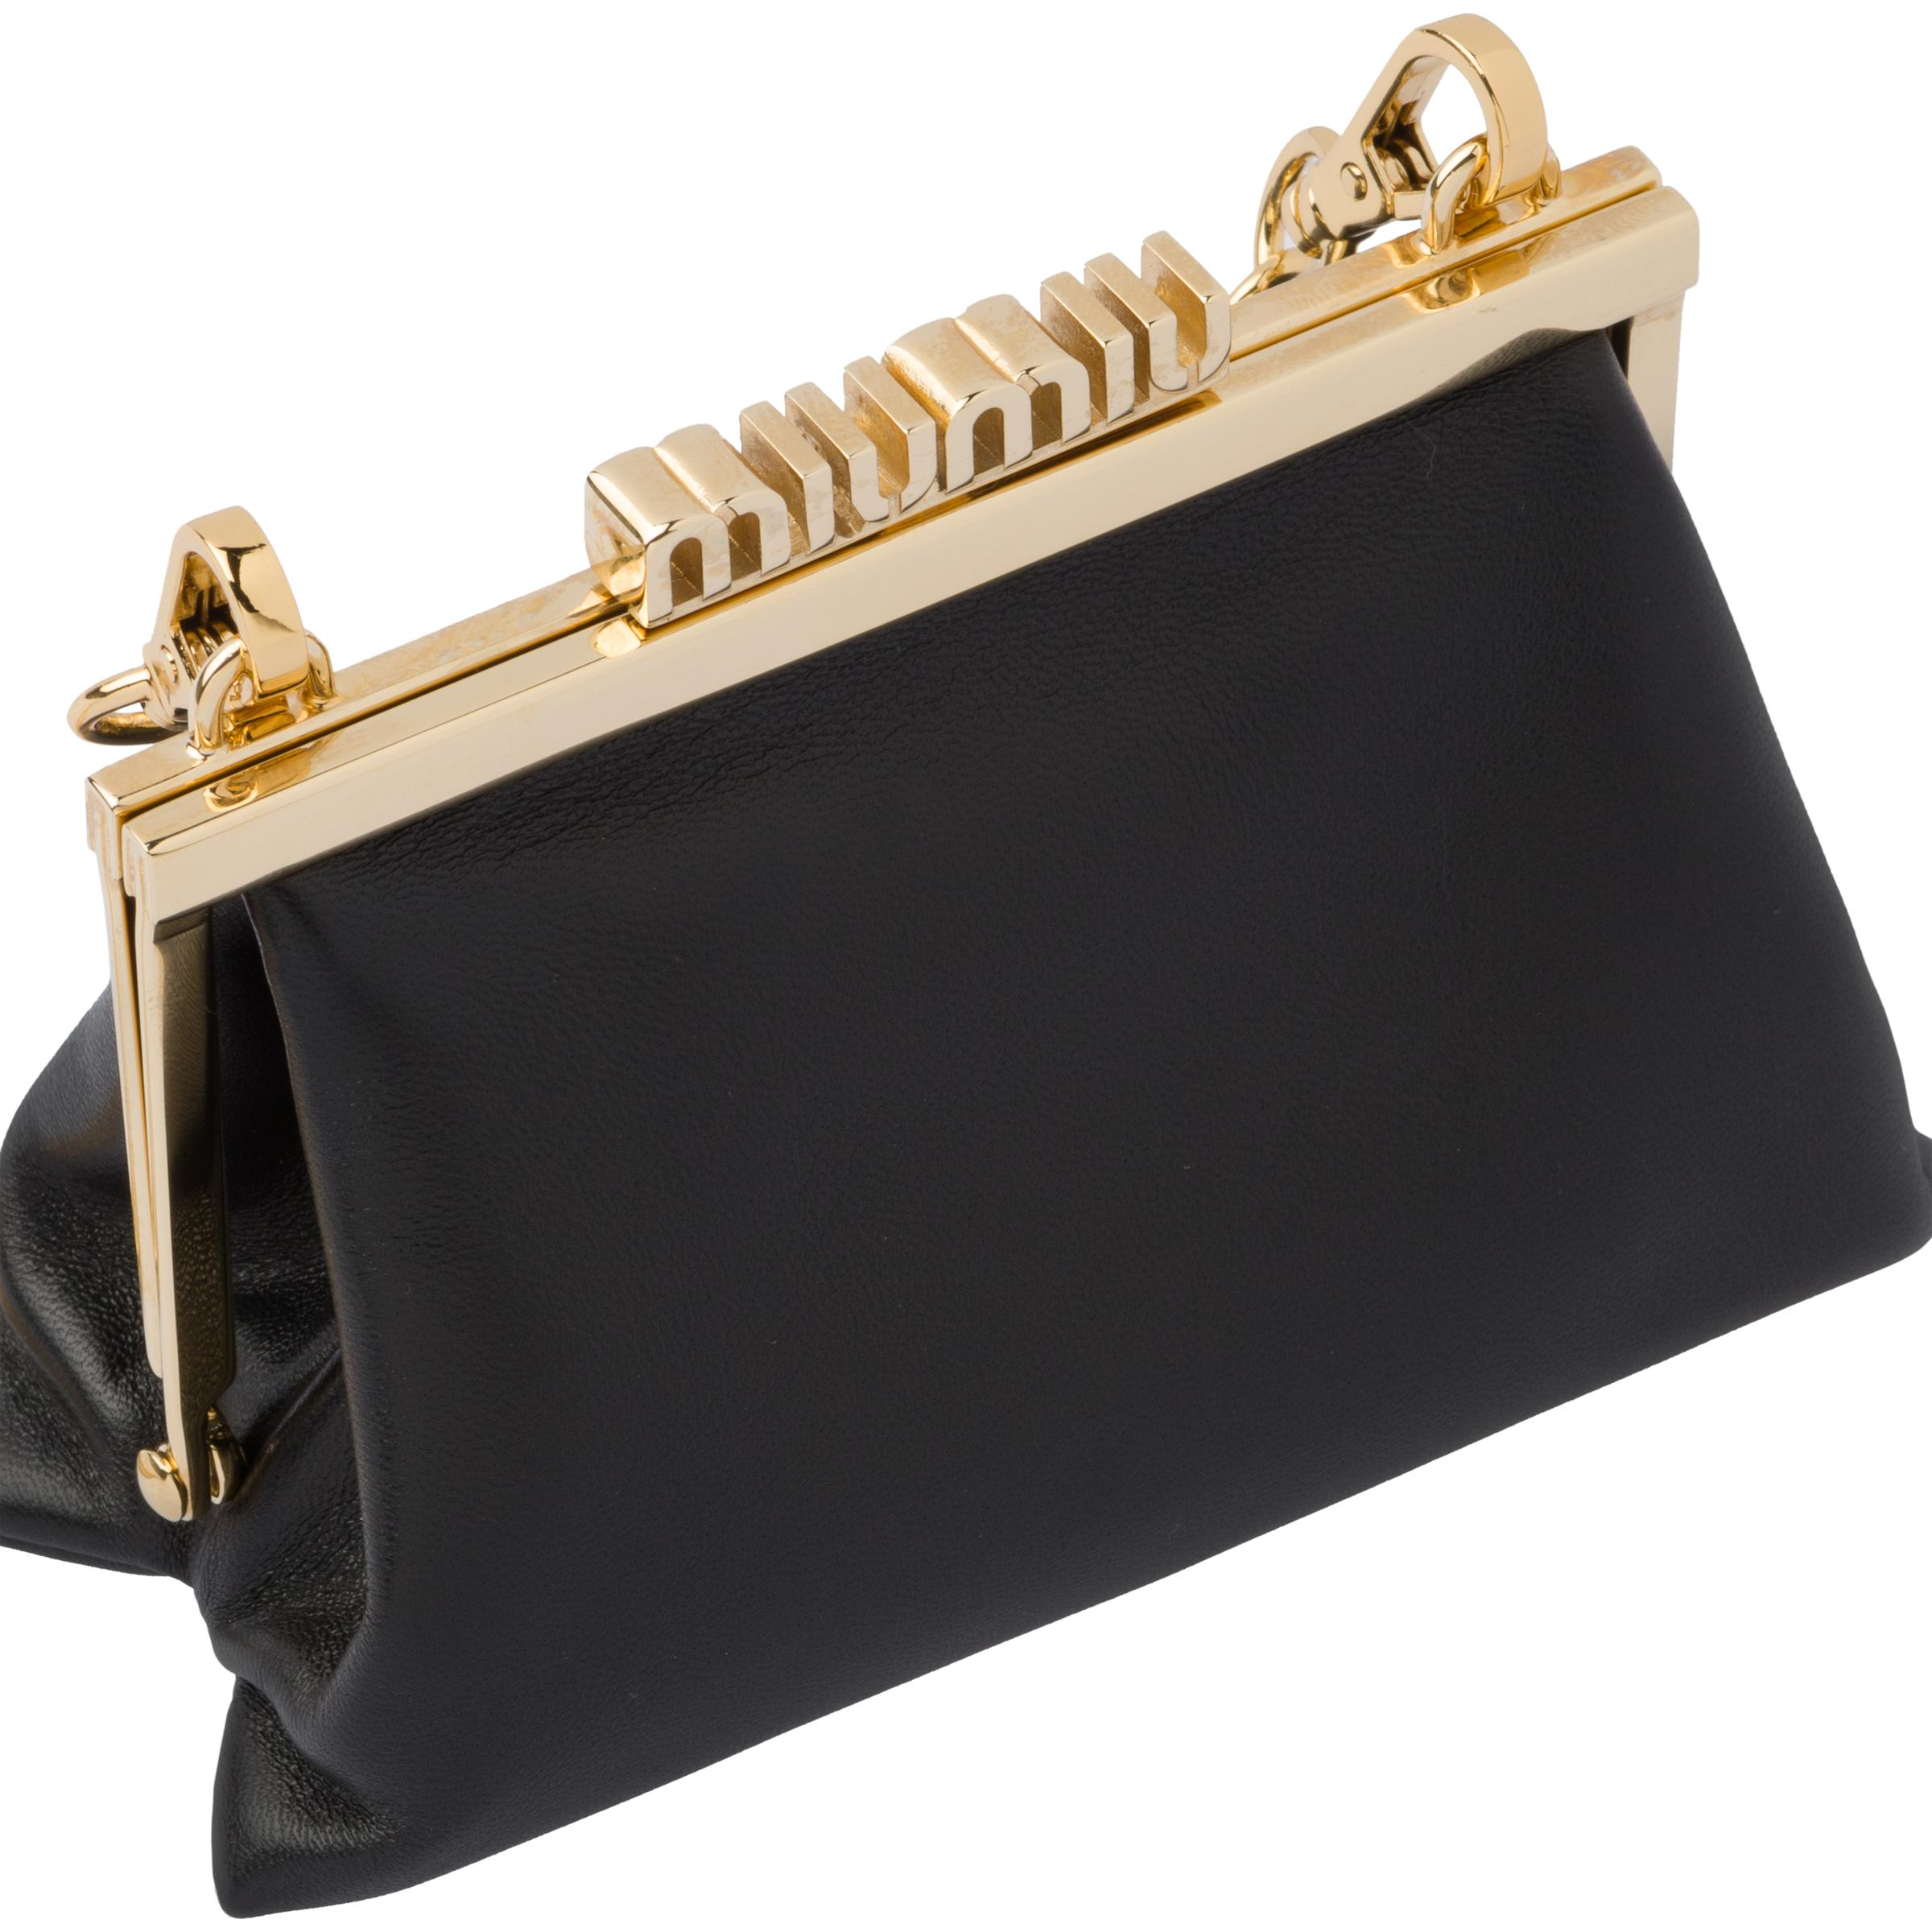 Nappa Leather Wallet With Shoulder Strap Women Black 4